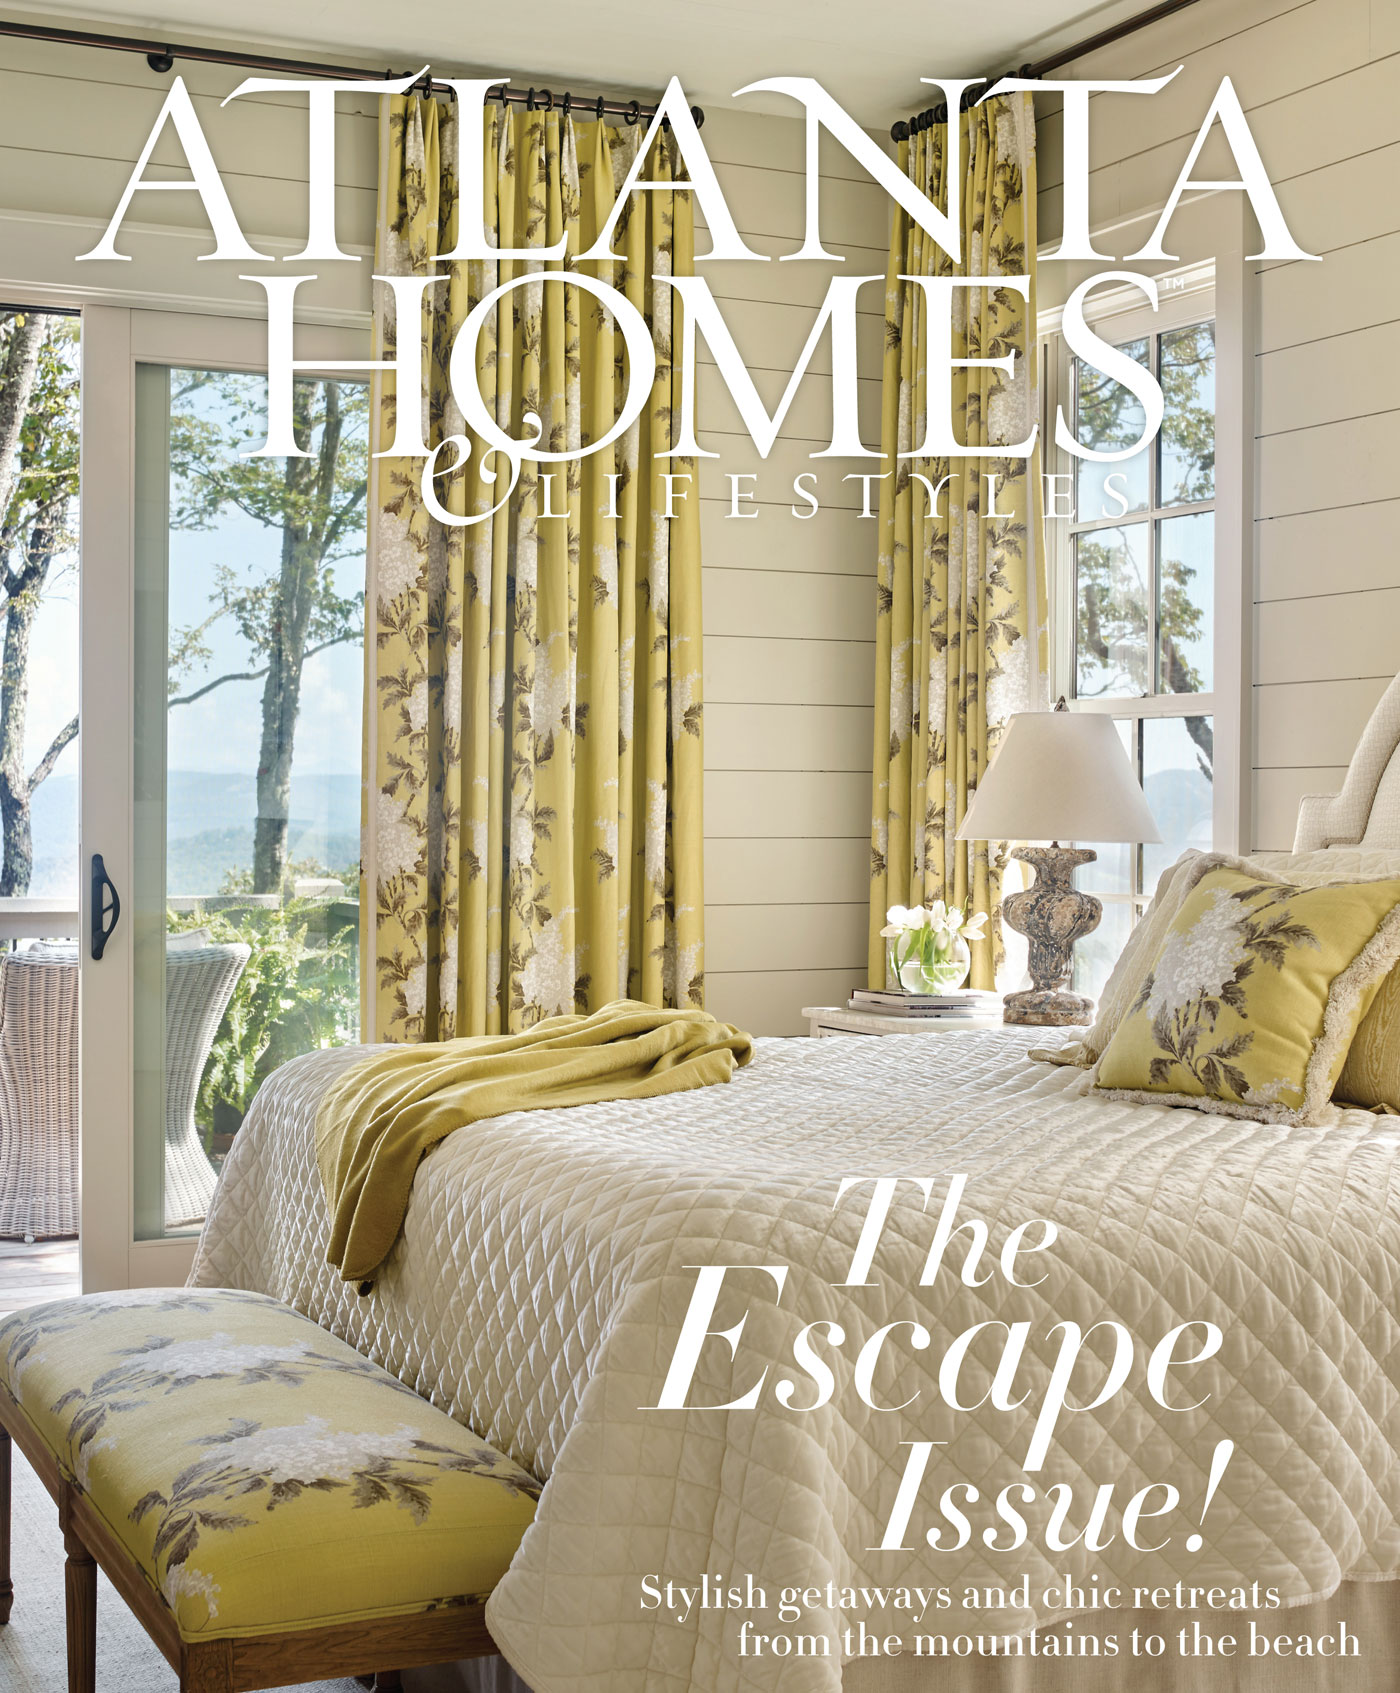 Atlanta Homes and Lifestyles Magazine